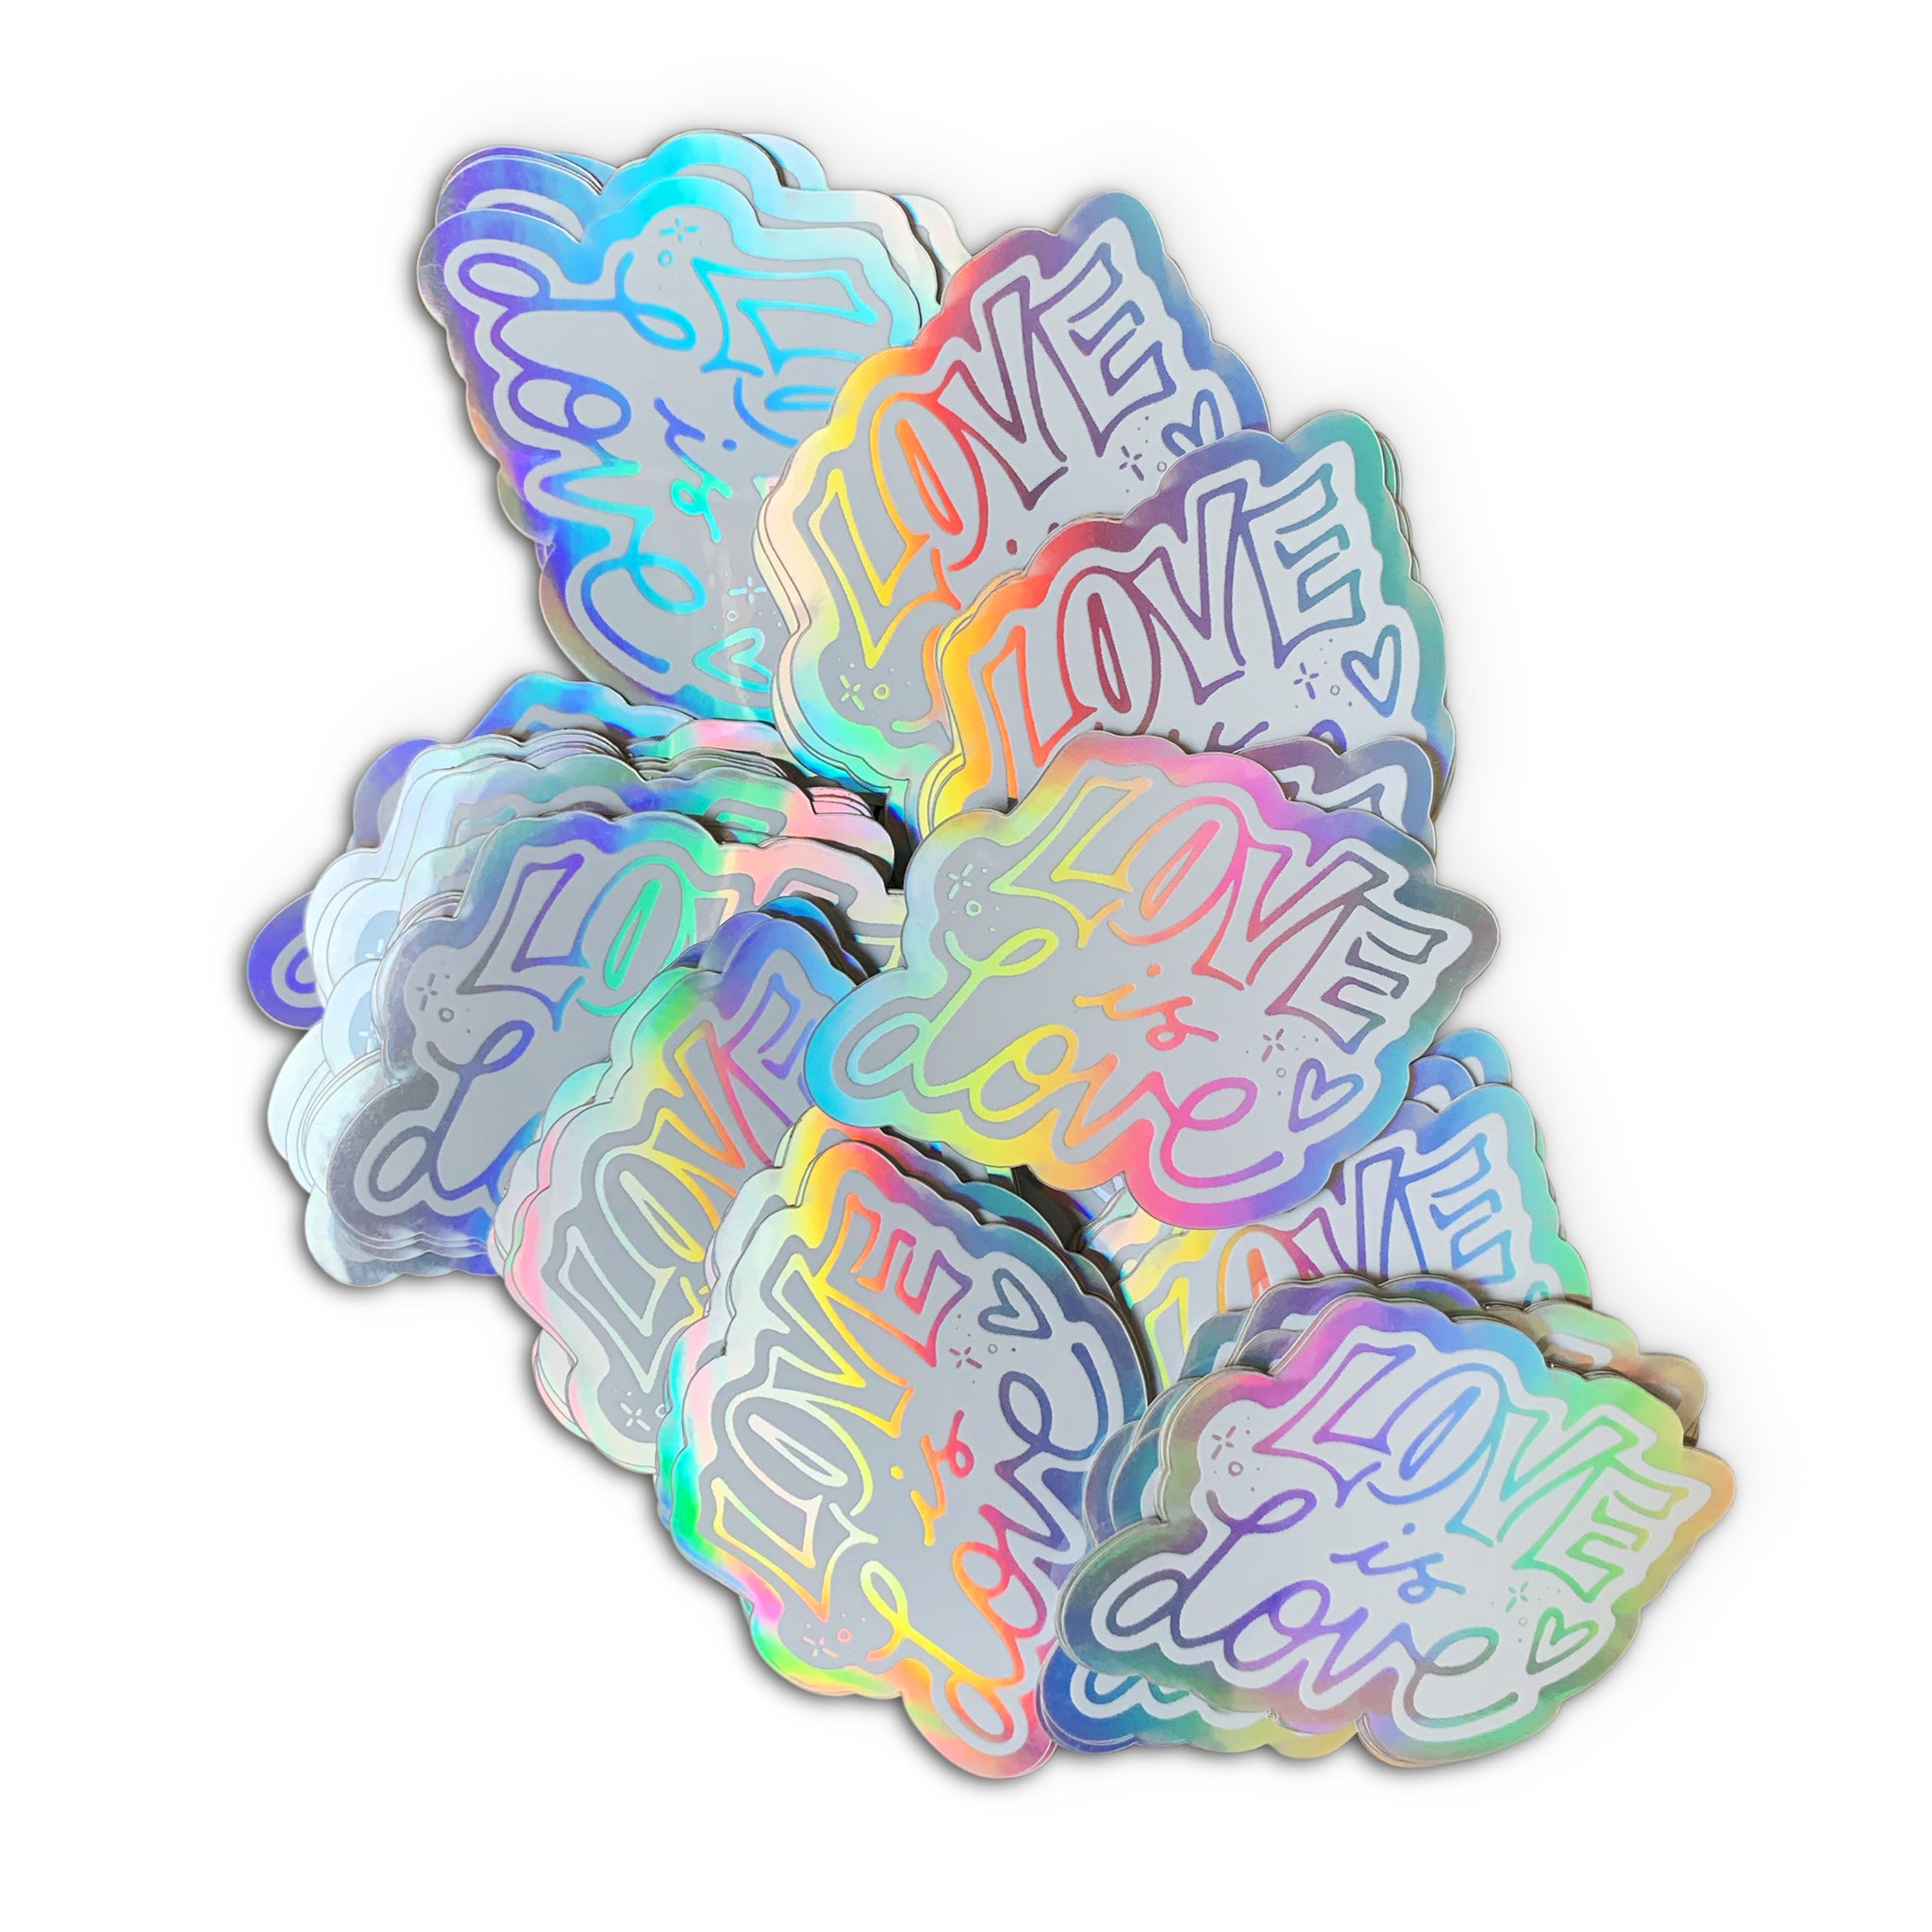 LOVE IS LOVE - Holographic Stickers